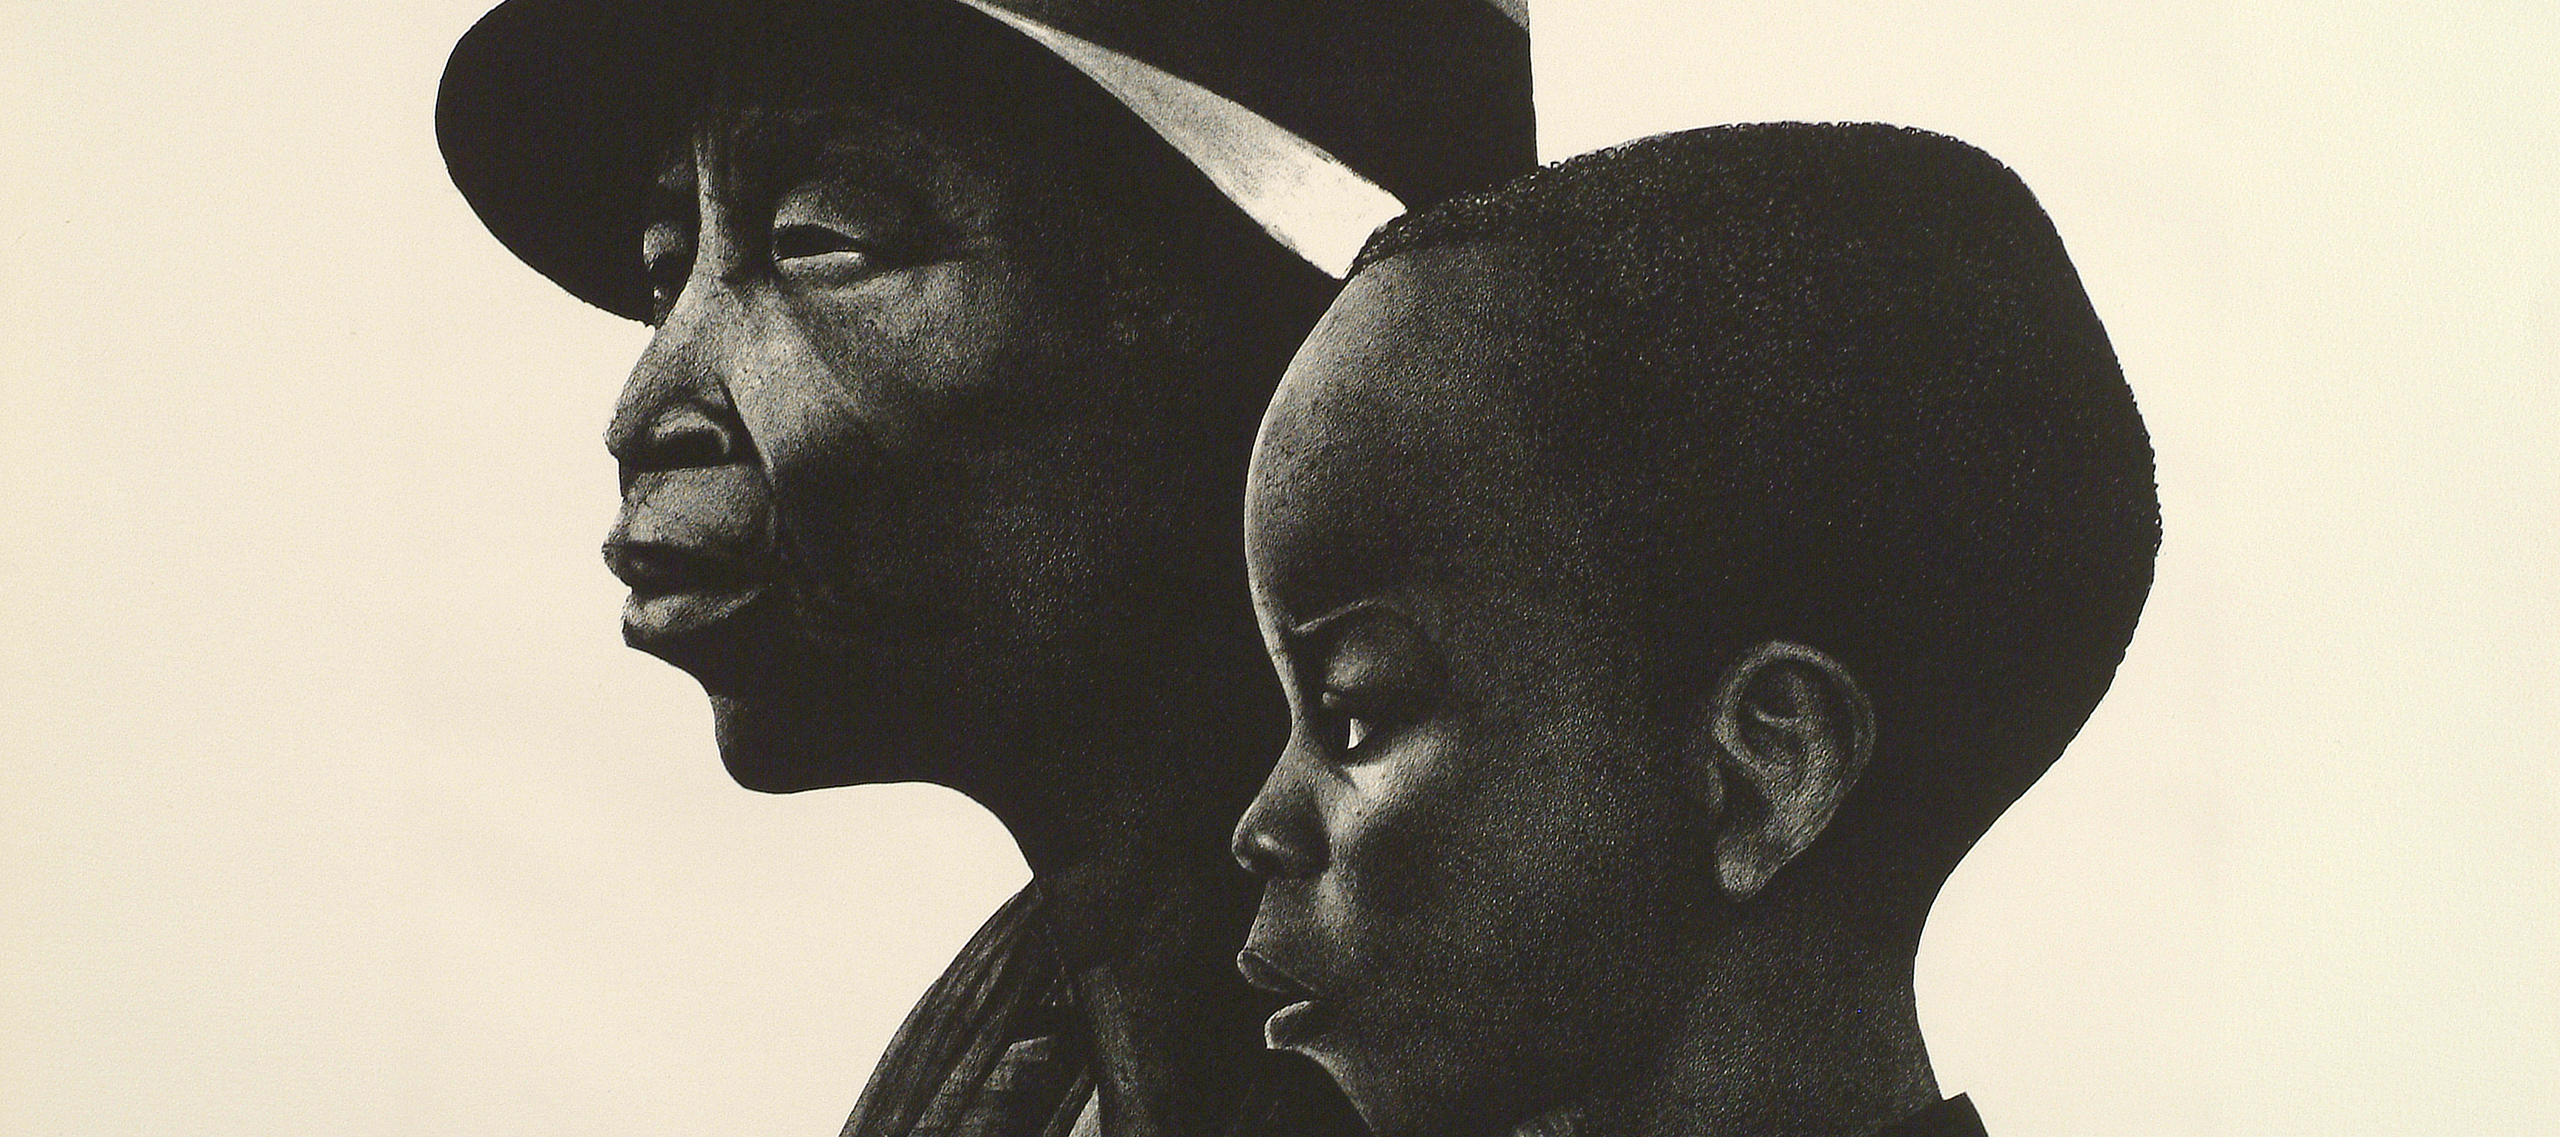 Black and white print of two dark-skinned individuals in profile. The person in the background is an older adult wearing a brimmed hat, and in the foreground and slightly to the right is a young child in profile.